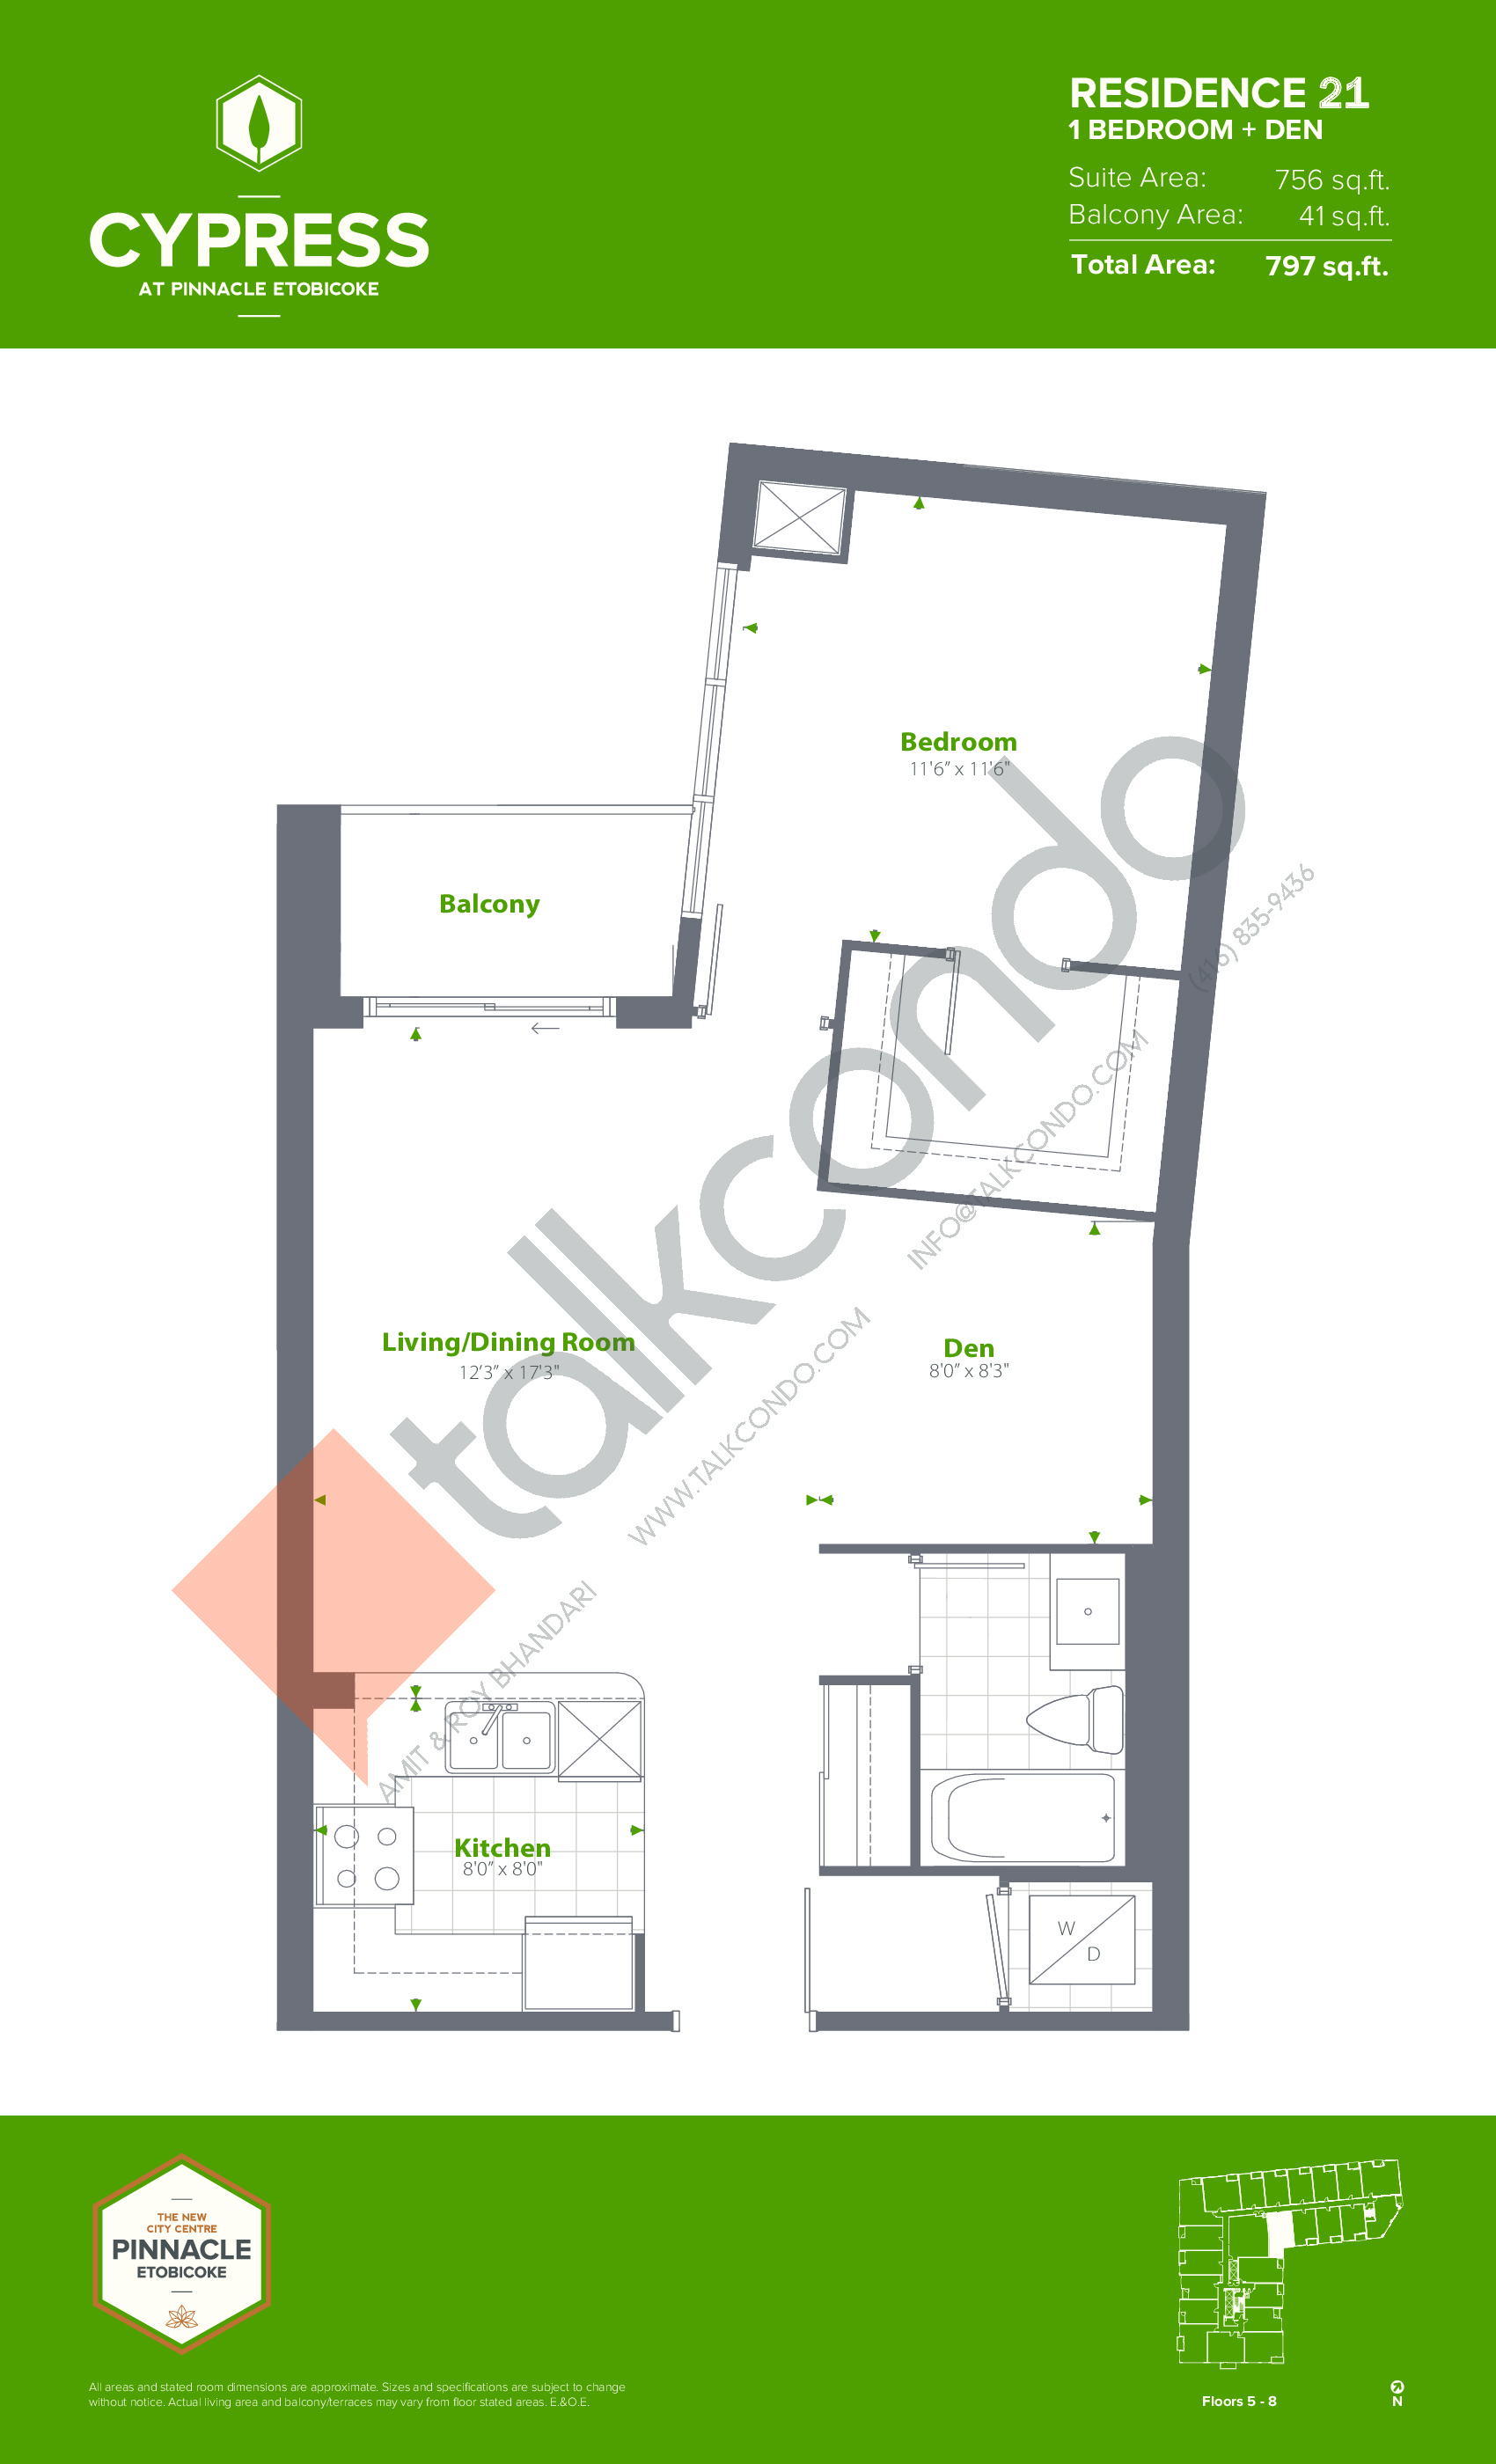 Residence 21 Floor Plan at Cypress at Pinnacle Etobicoke - 756 sq.ft